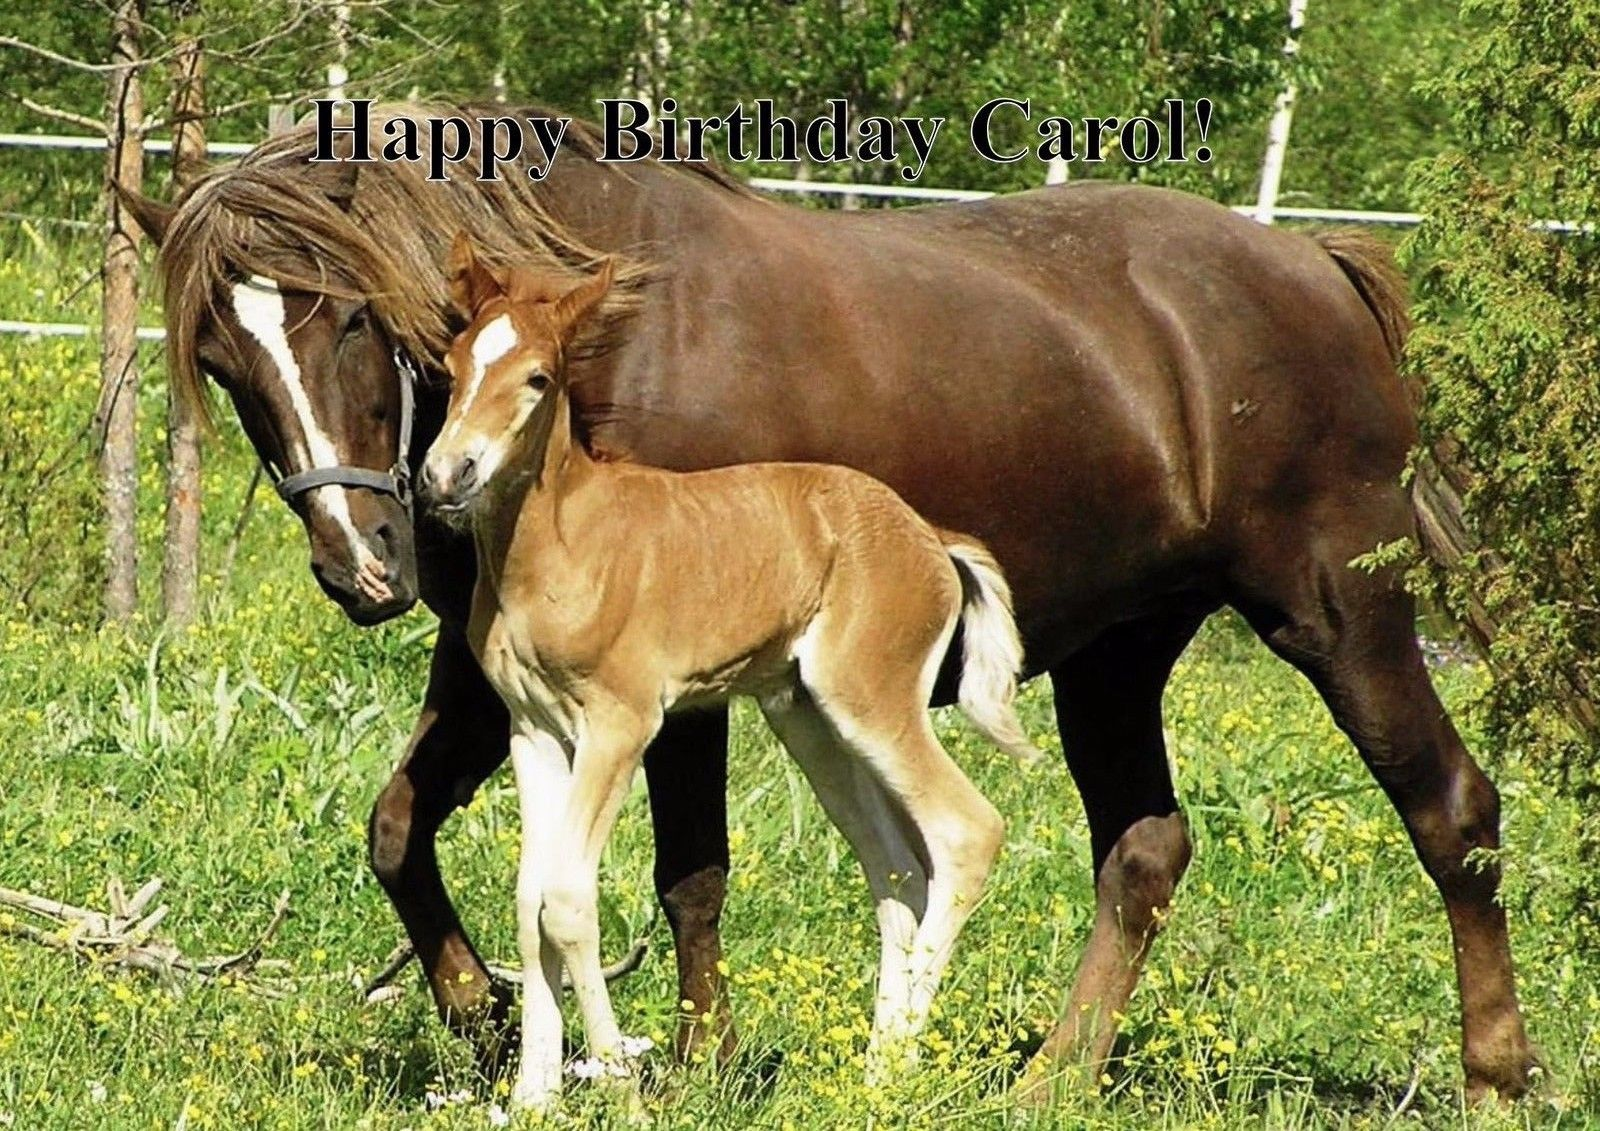 Horse foal personalised printed birthday cards cute animals horses horse foal personalised printed birthday cards bookmarktalkfo Images